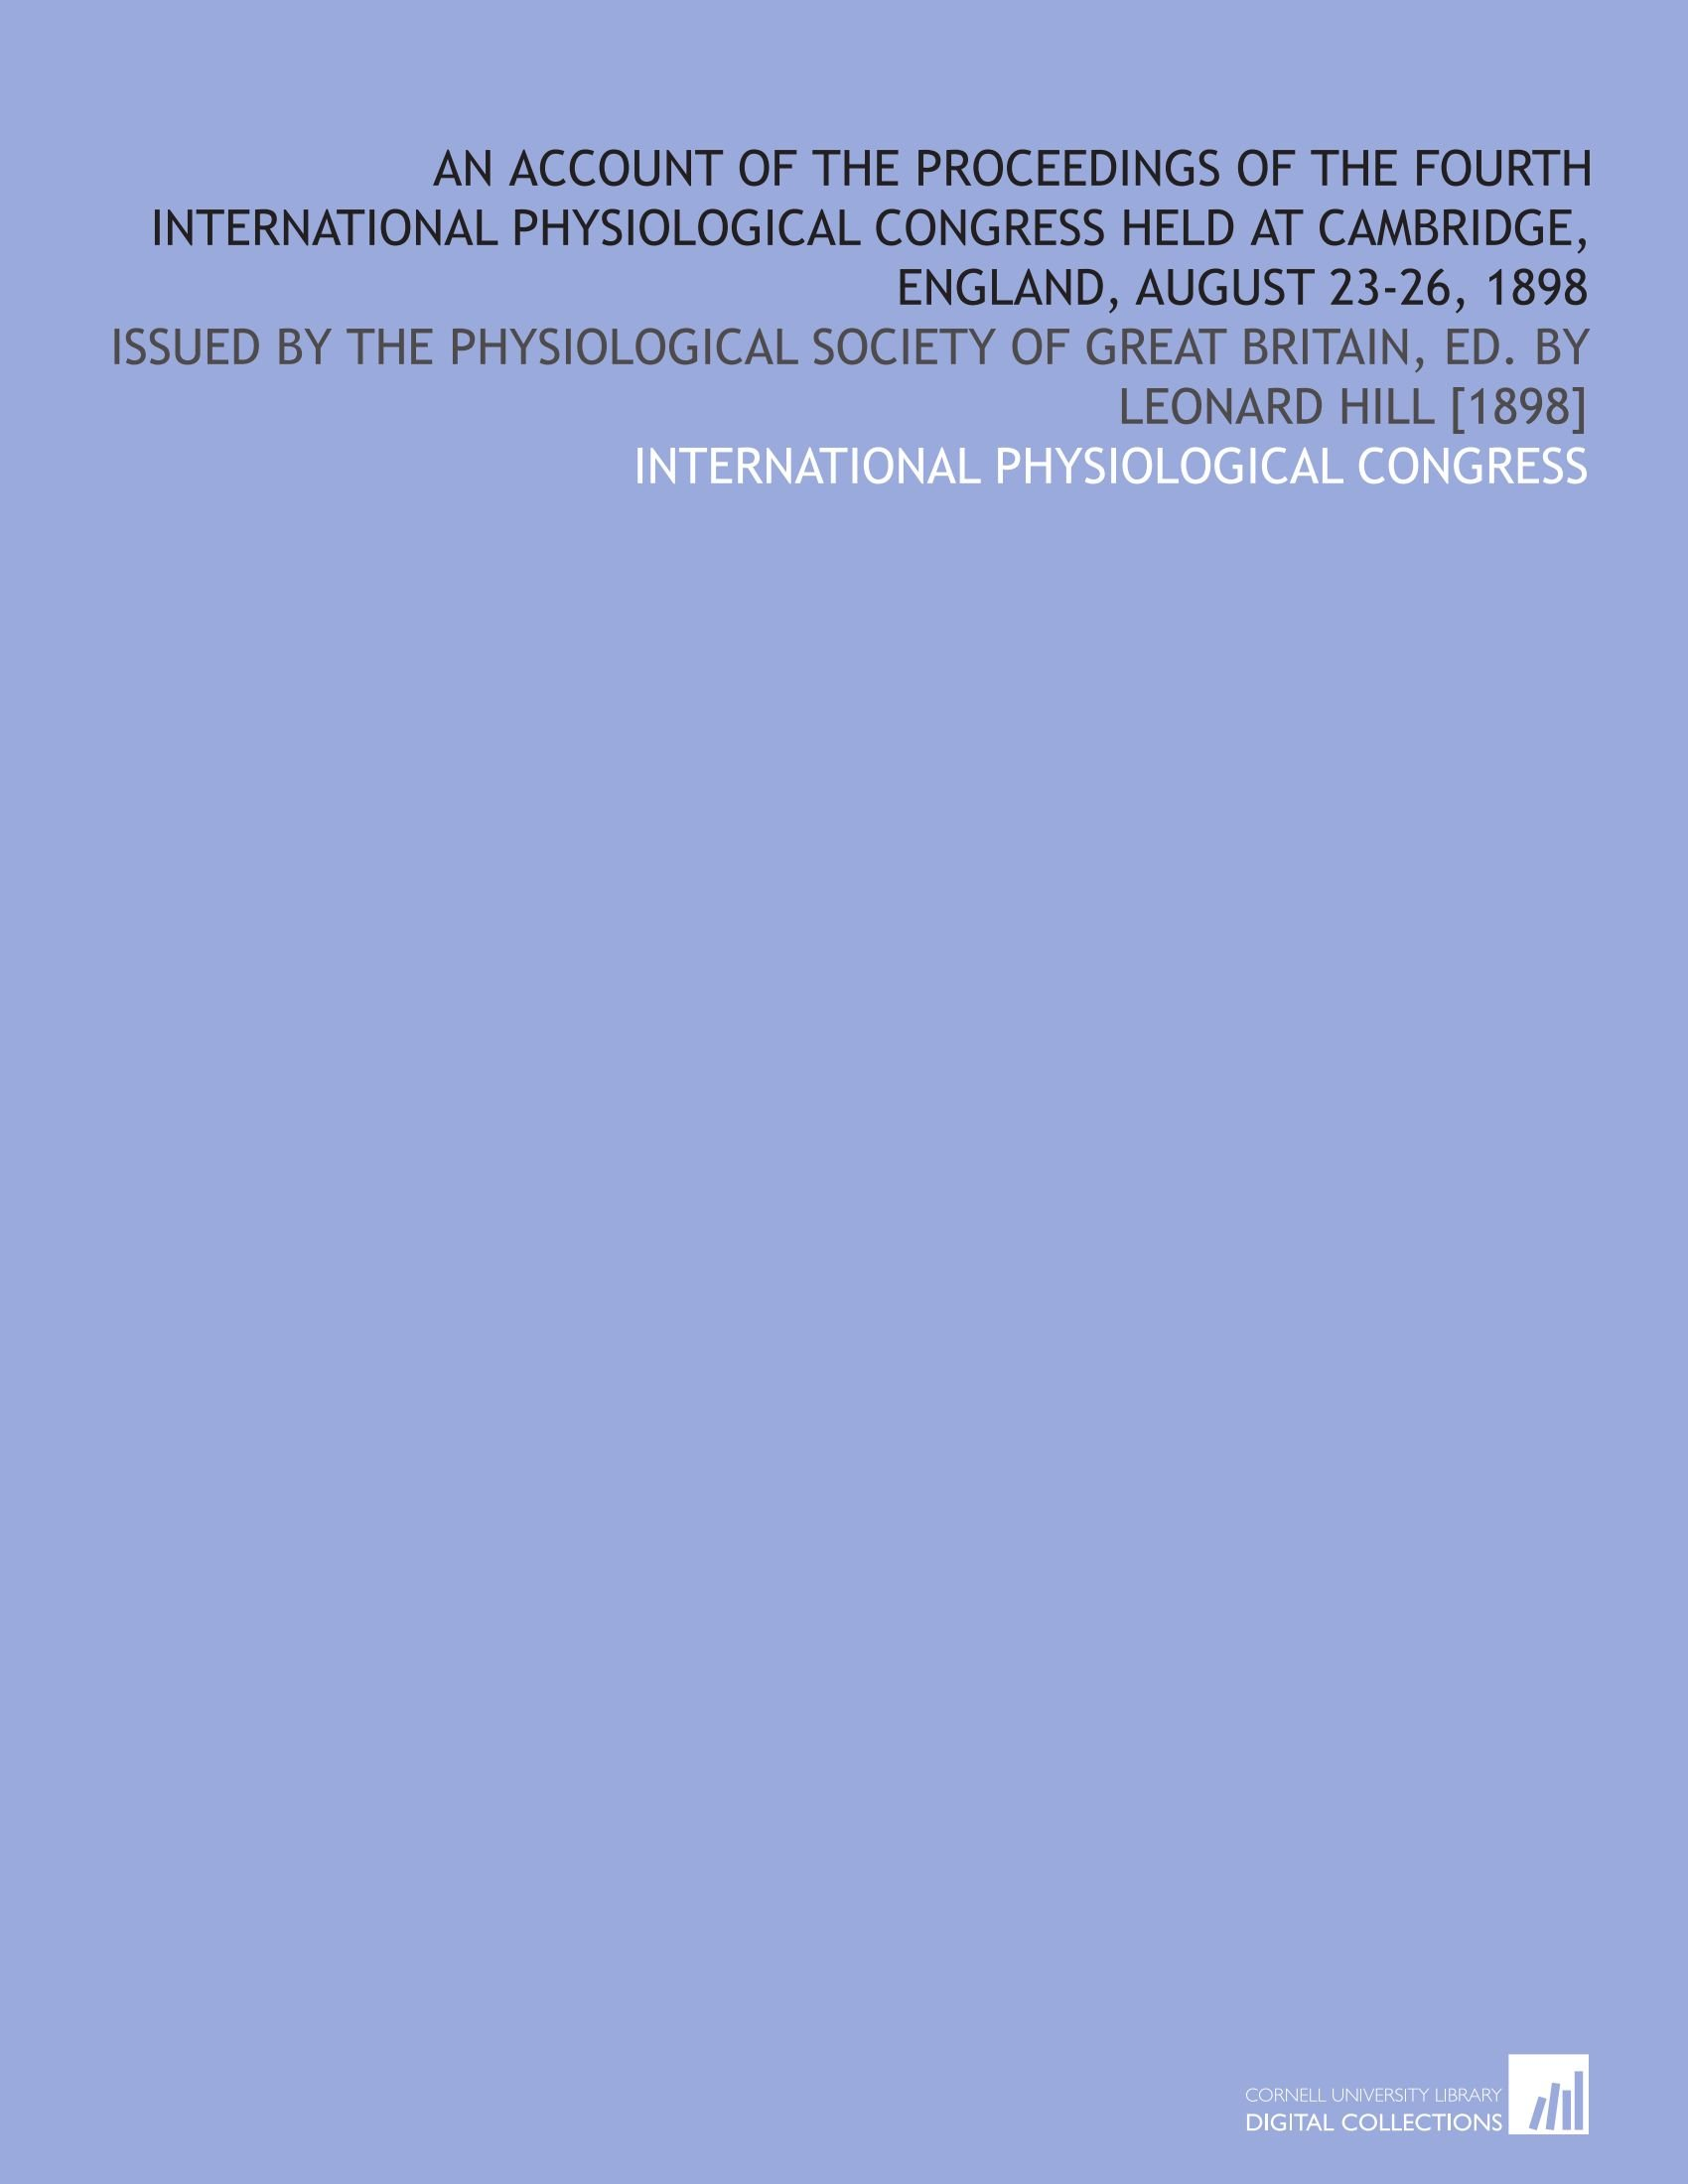 Download An account of the proceedings of the Fourth International Physiological Congress held at Cambridge, England, August 23-26, 1898: Issued by the ... of Great Britain, ed. by Leonard Hill [1898] pdf epub